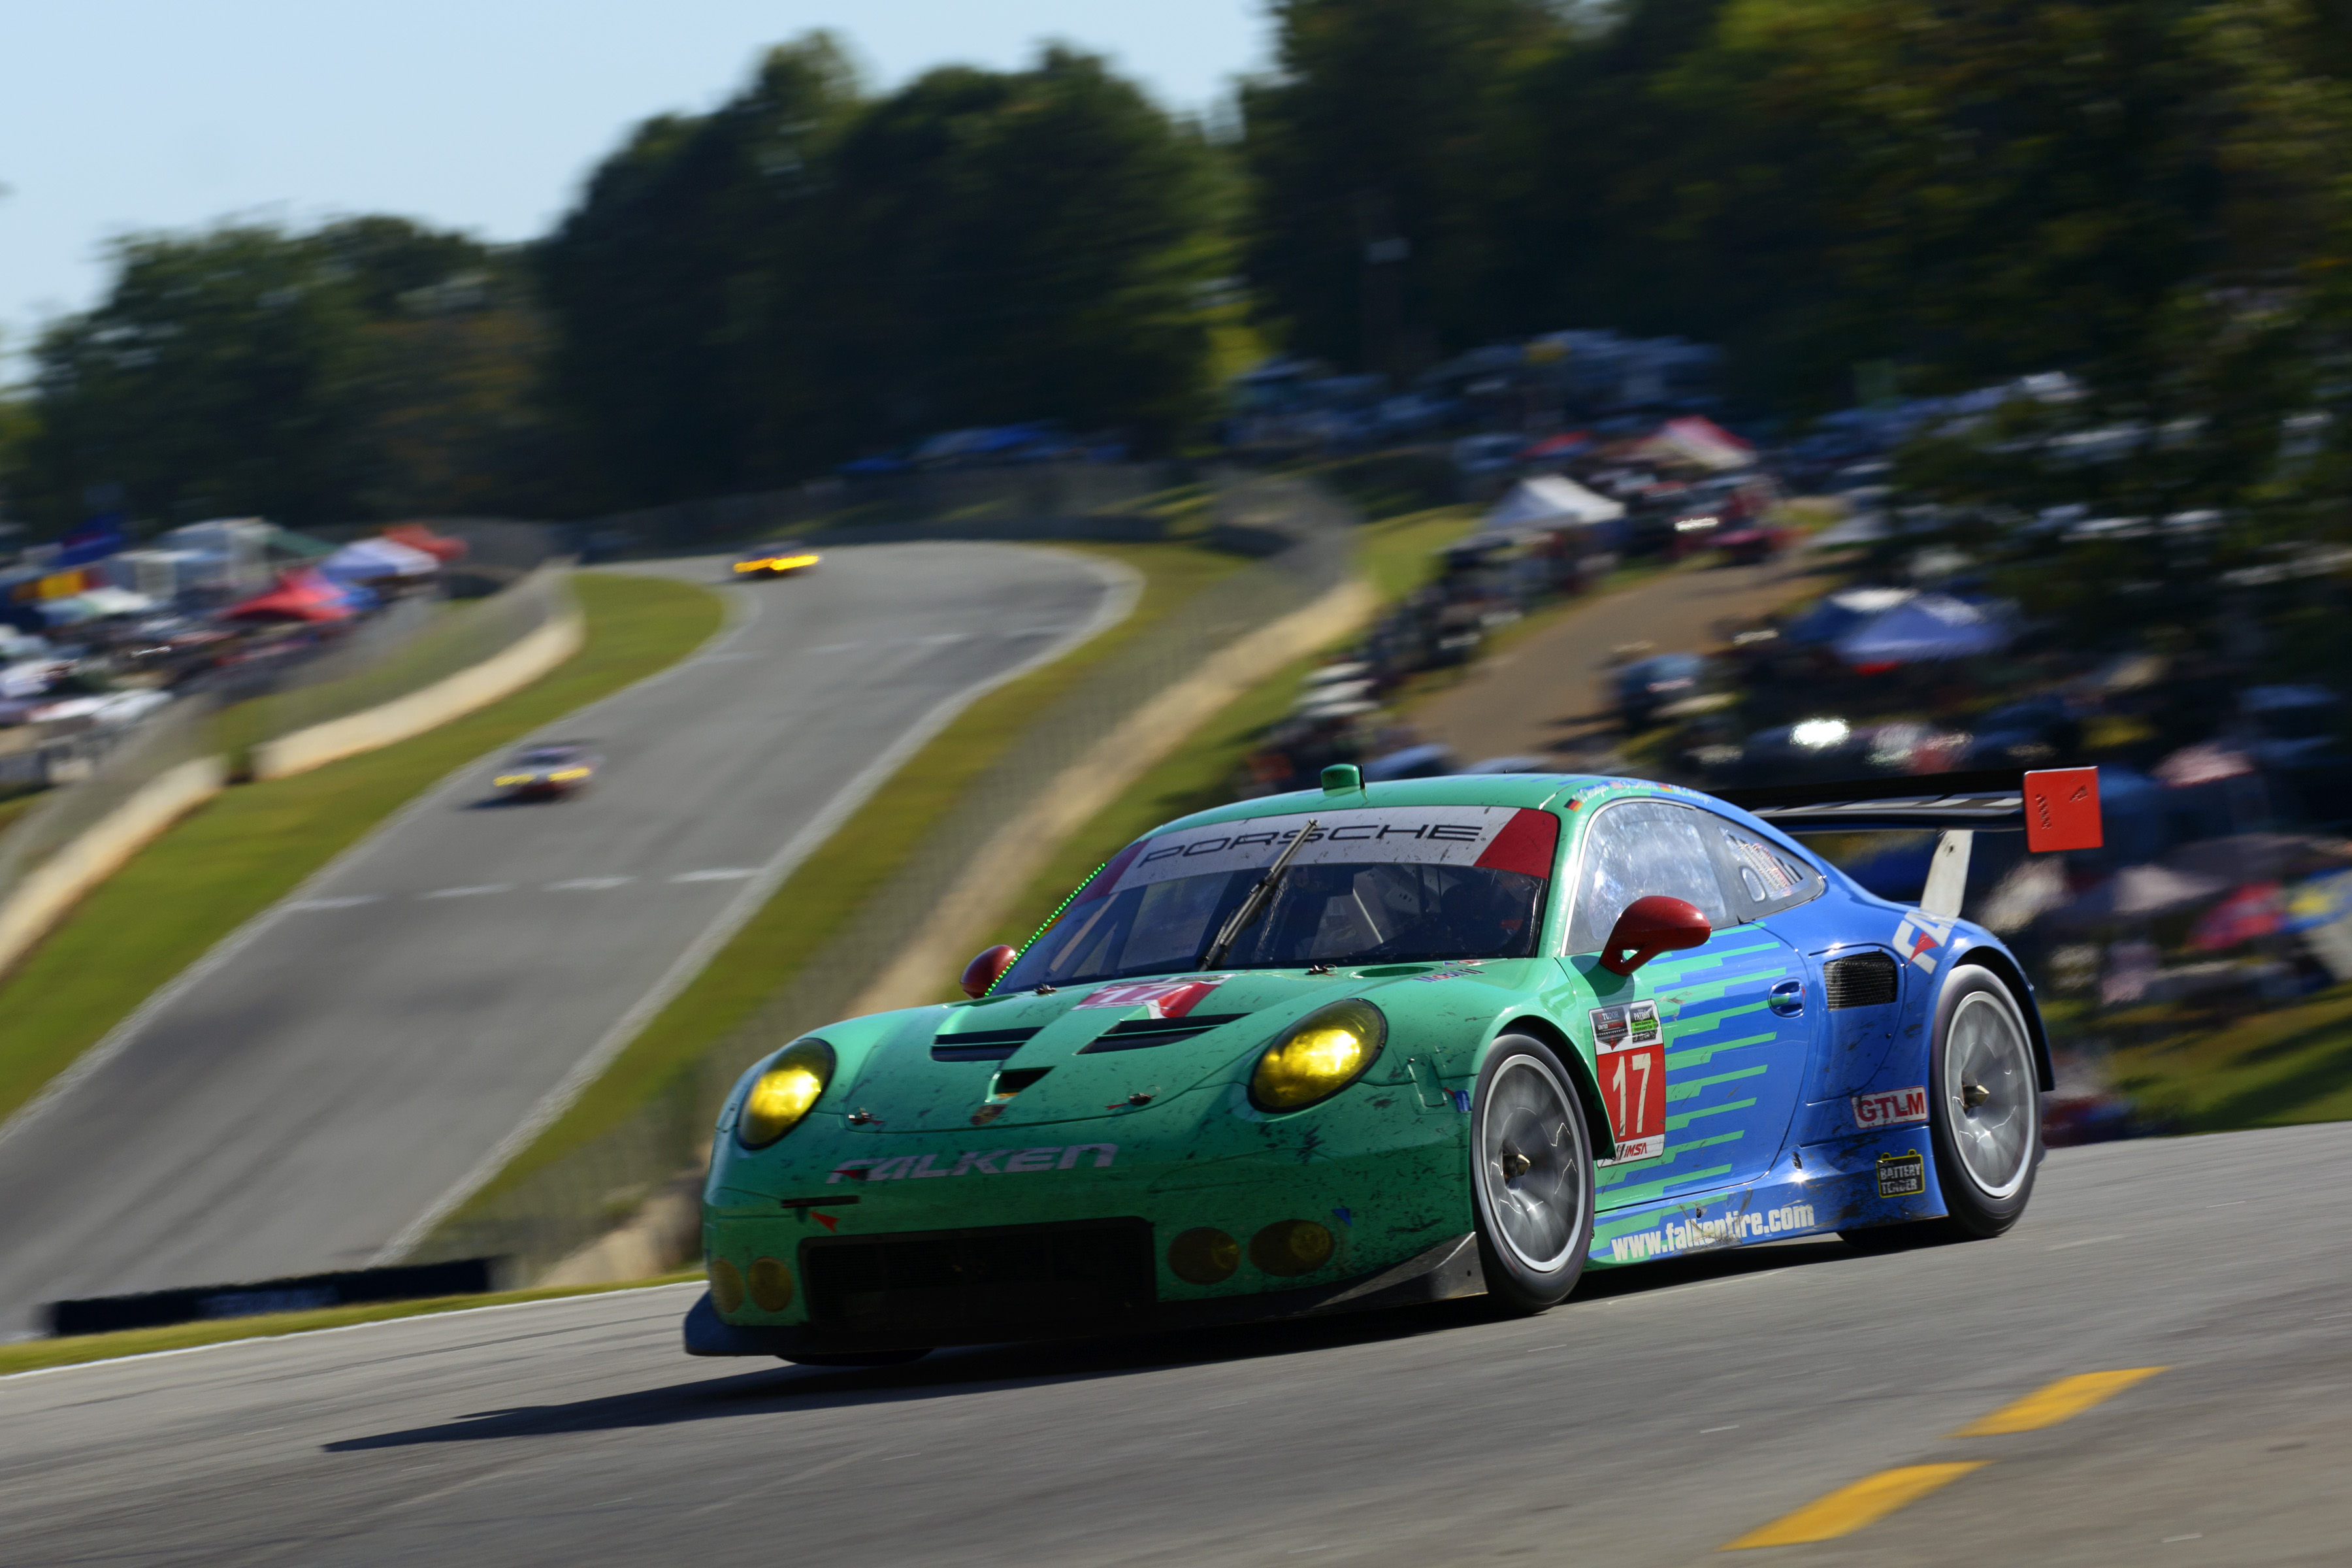 The iconic teal and blue Falken Tire Porsche 911 RSR at Road Atlanta.